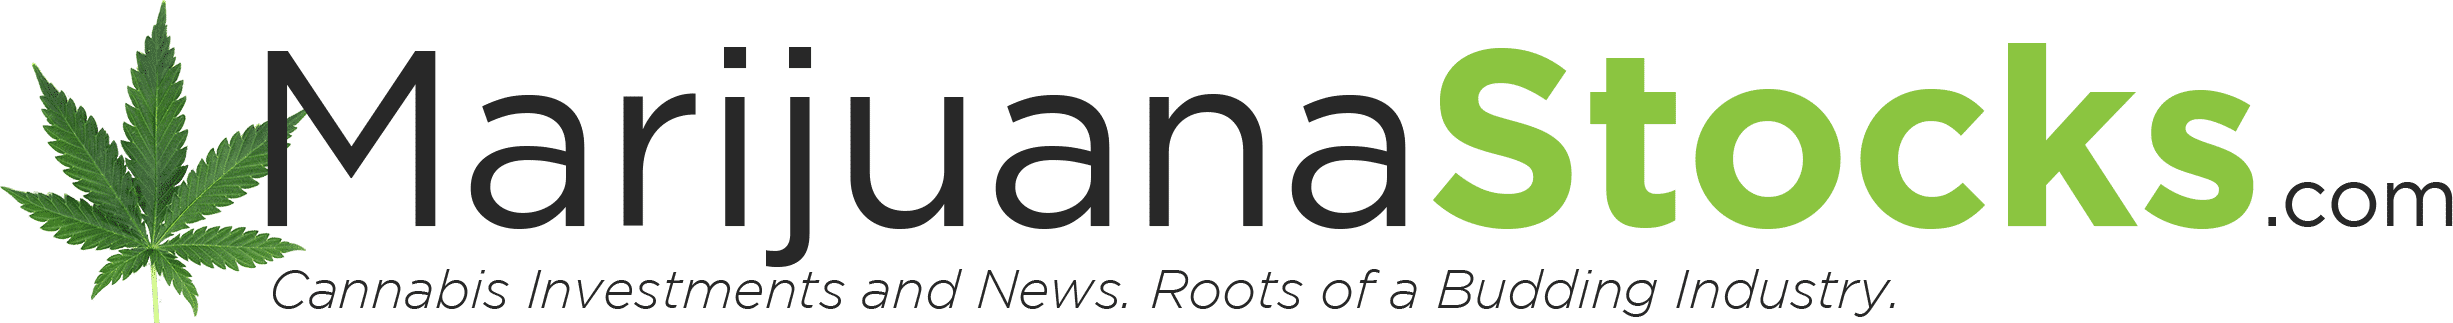 Marijuana Stocks | Cannabis Investments and News. Roots of a Budding Industry.™